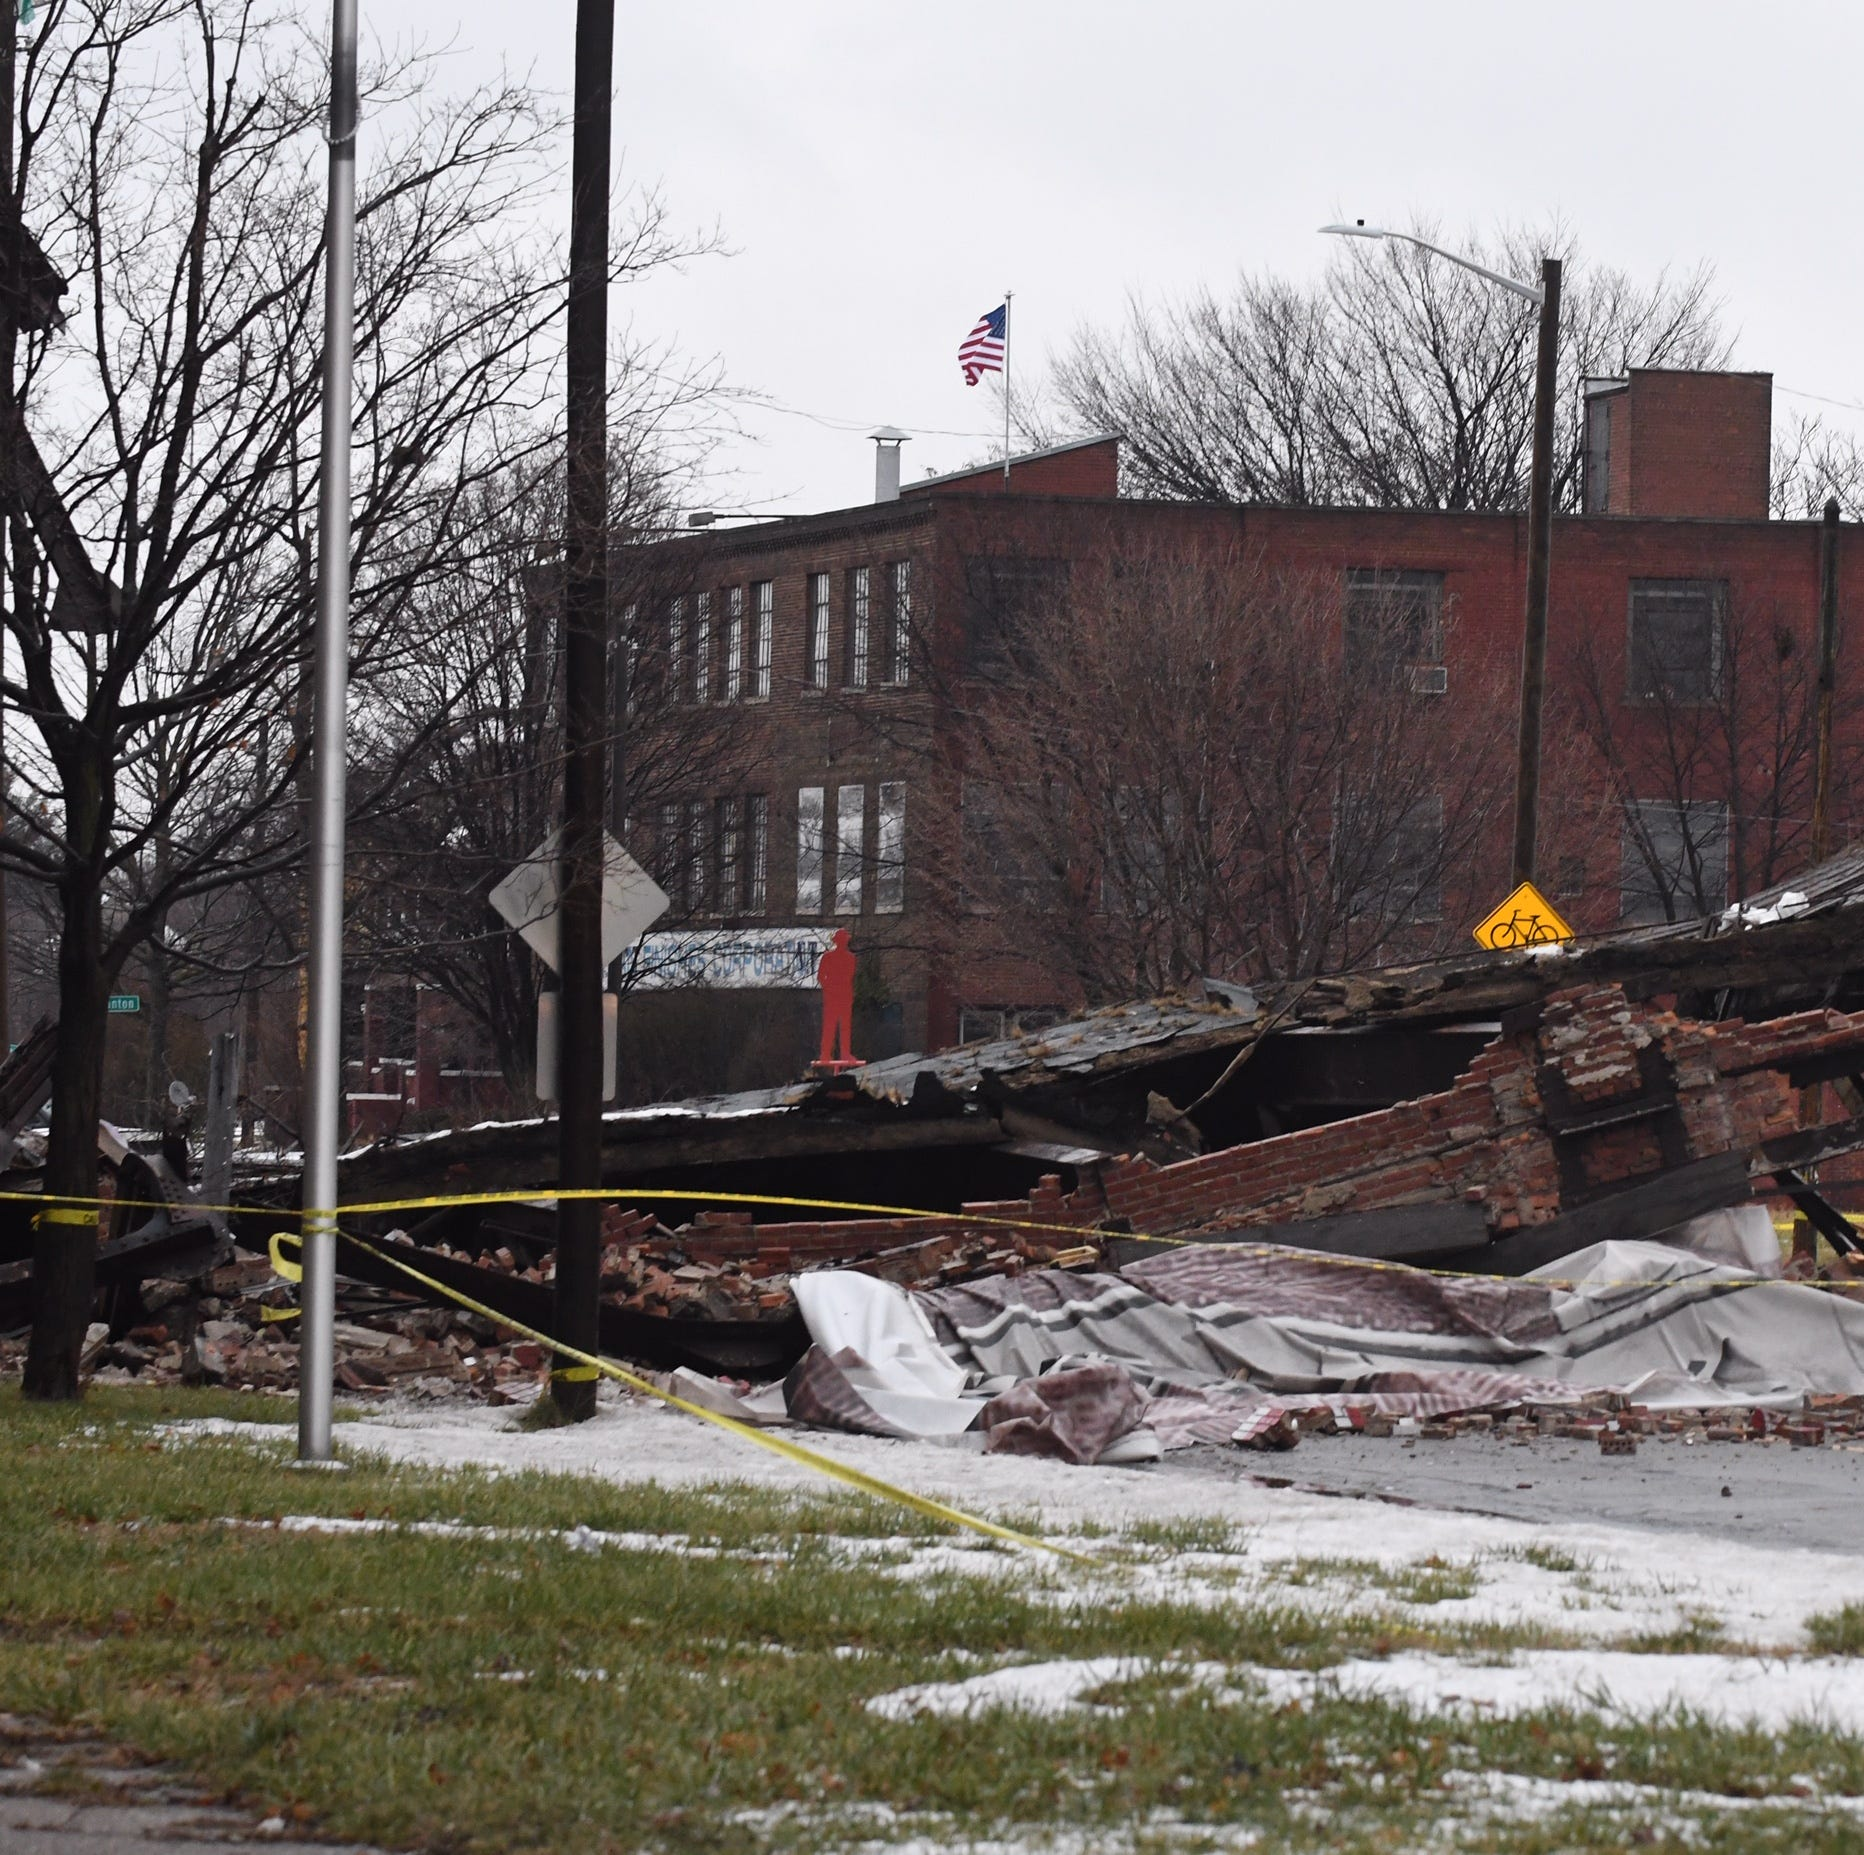 Weather fluctuations likely to blame in collapse of bridge at old Packard Plant